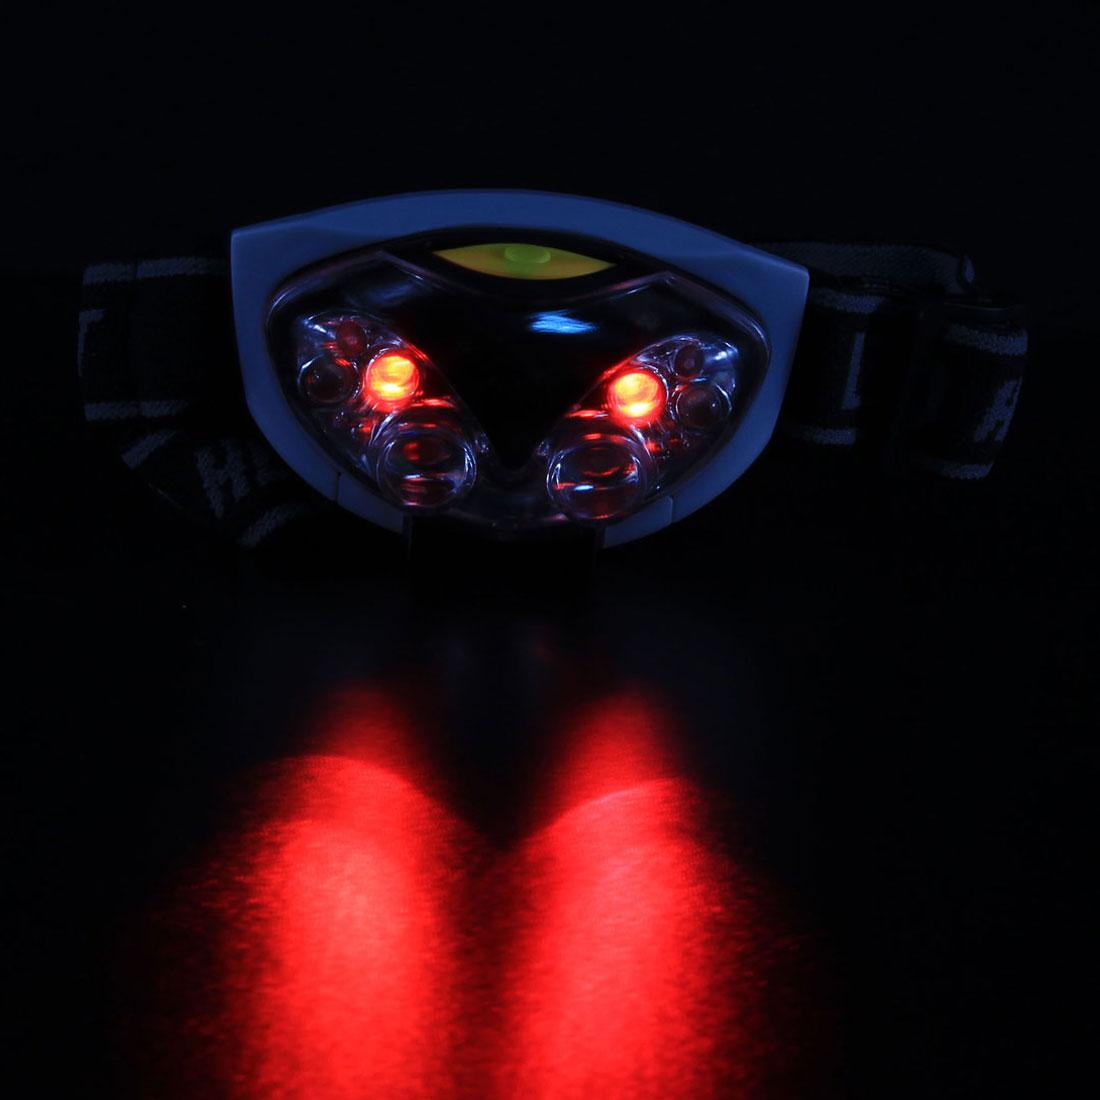 Waterproof Bike LED Headlight Bicycle Hiking Light Torch AAA Head Lamp 6 LEDs for Outdoor Camping Hiking